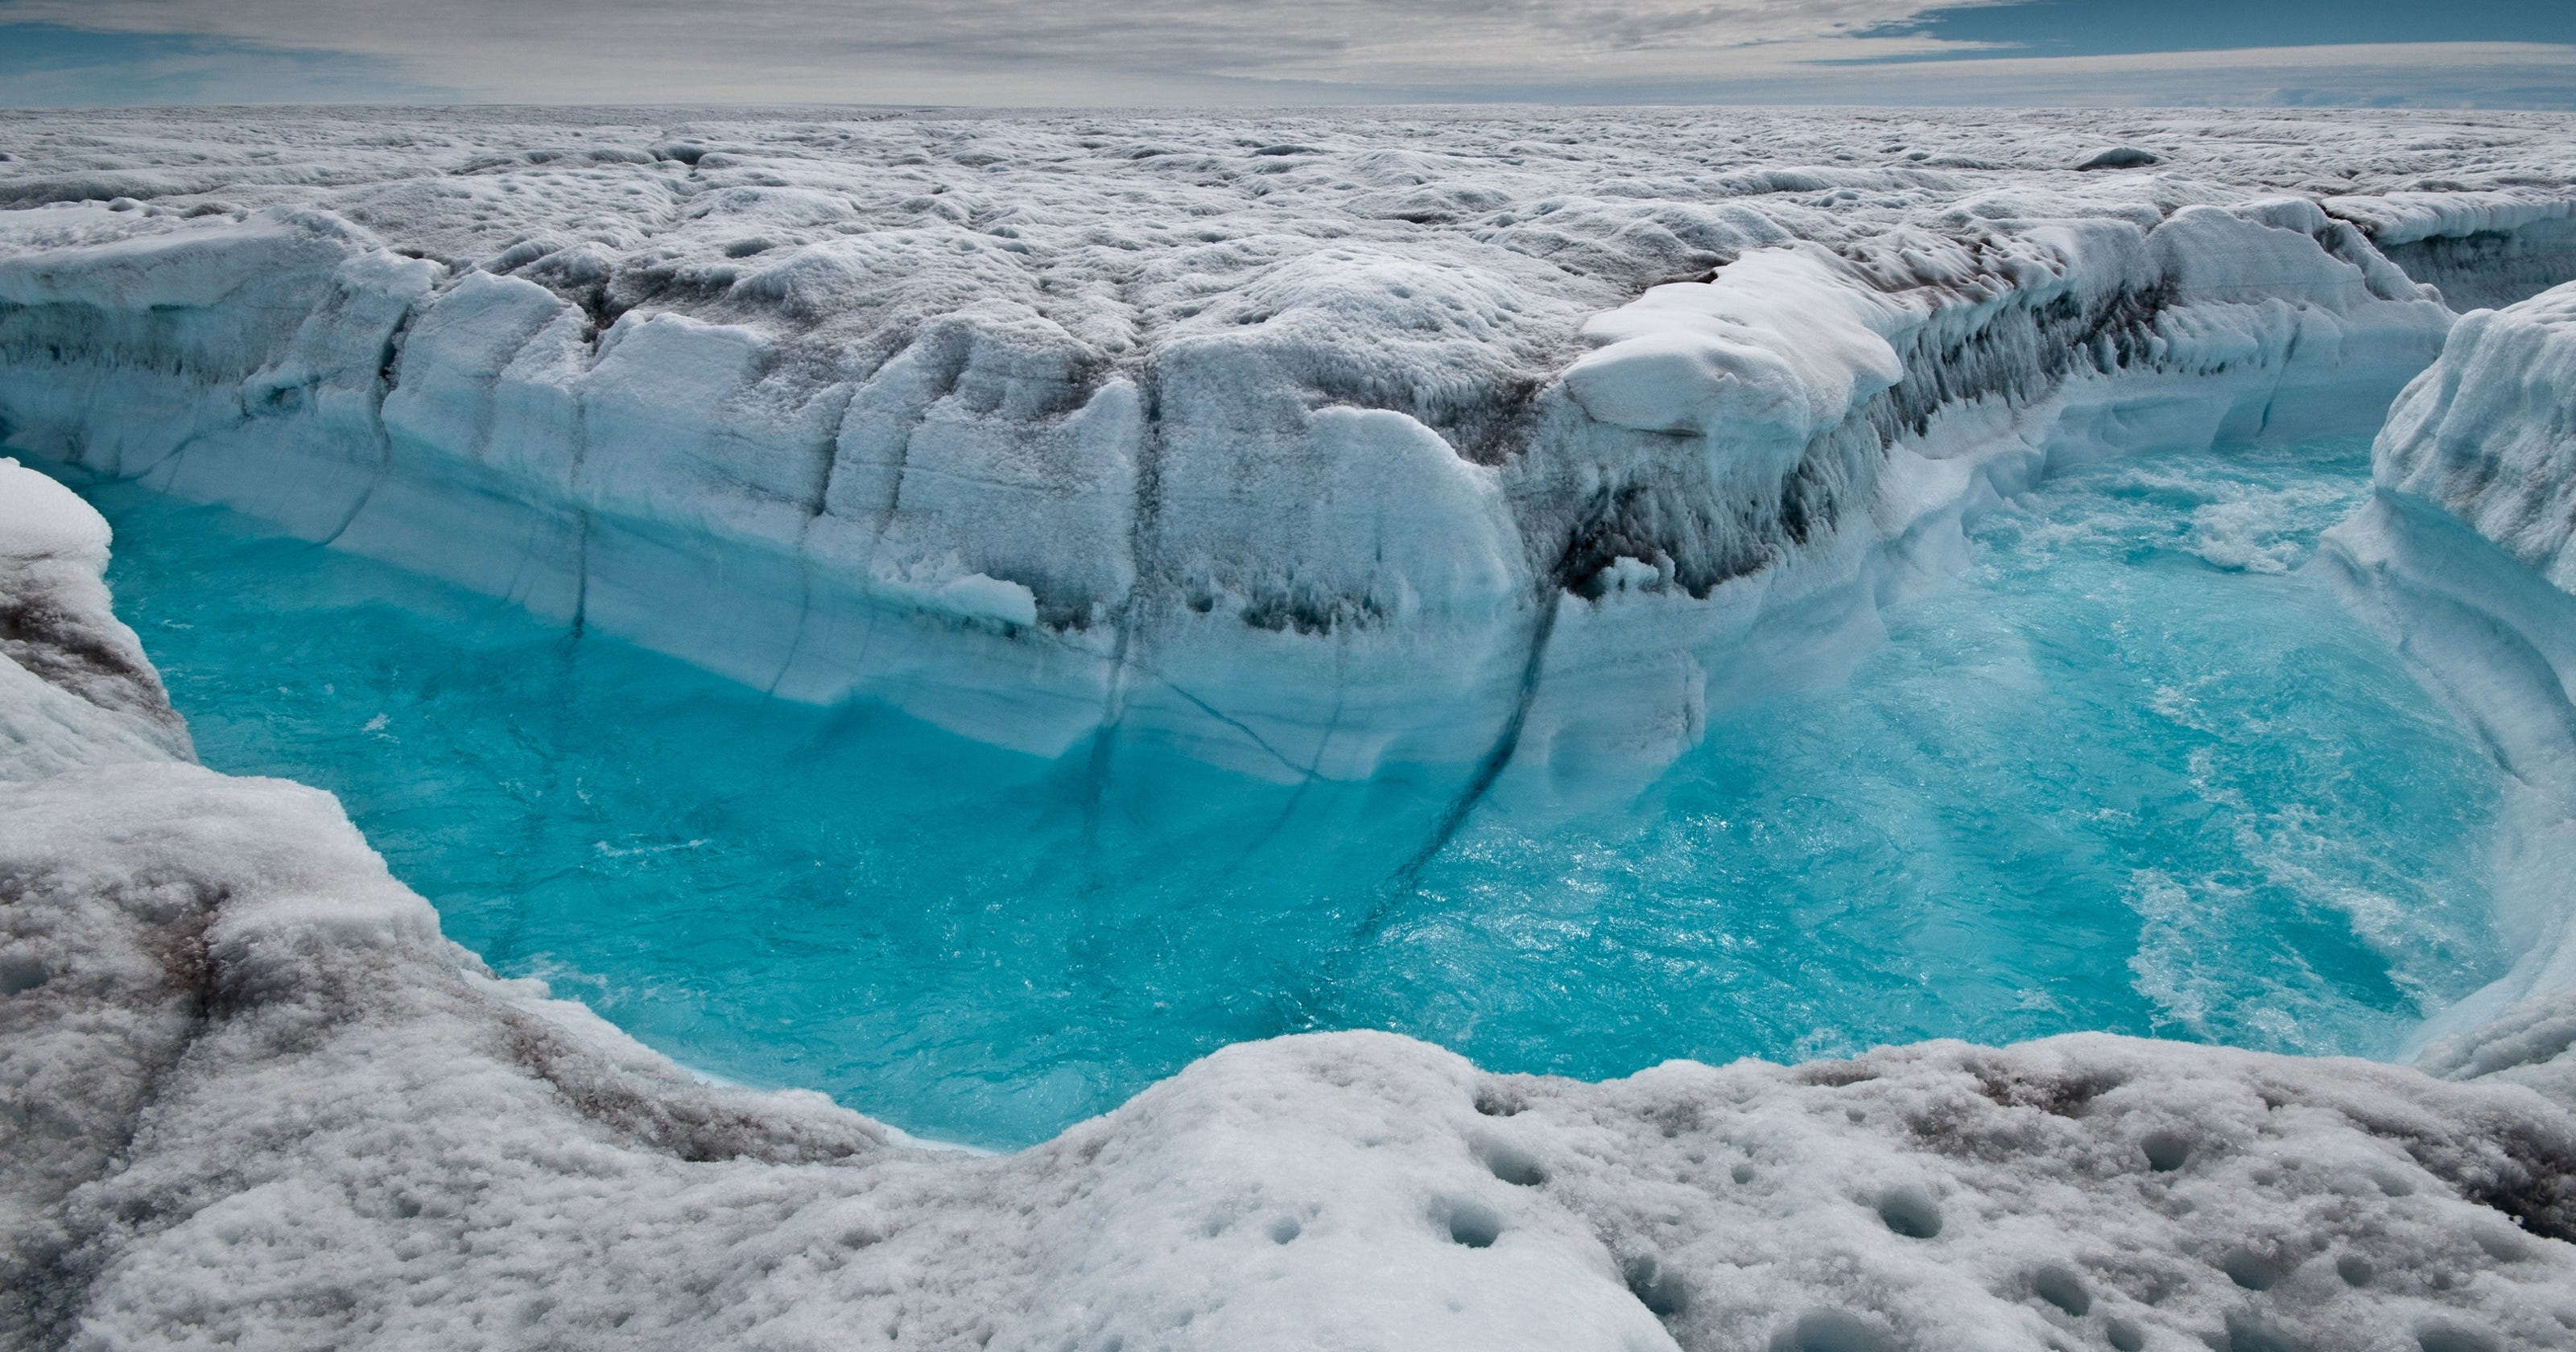 ice sheets melting at poles faster than before